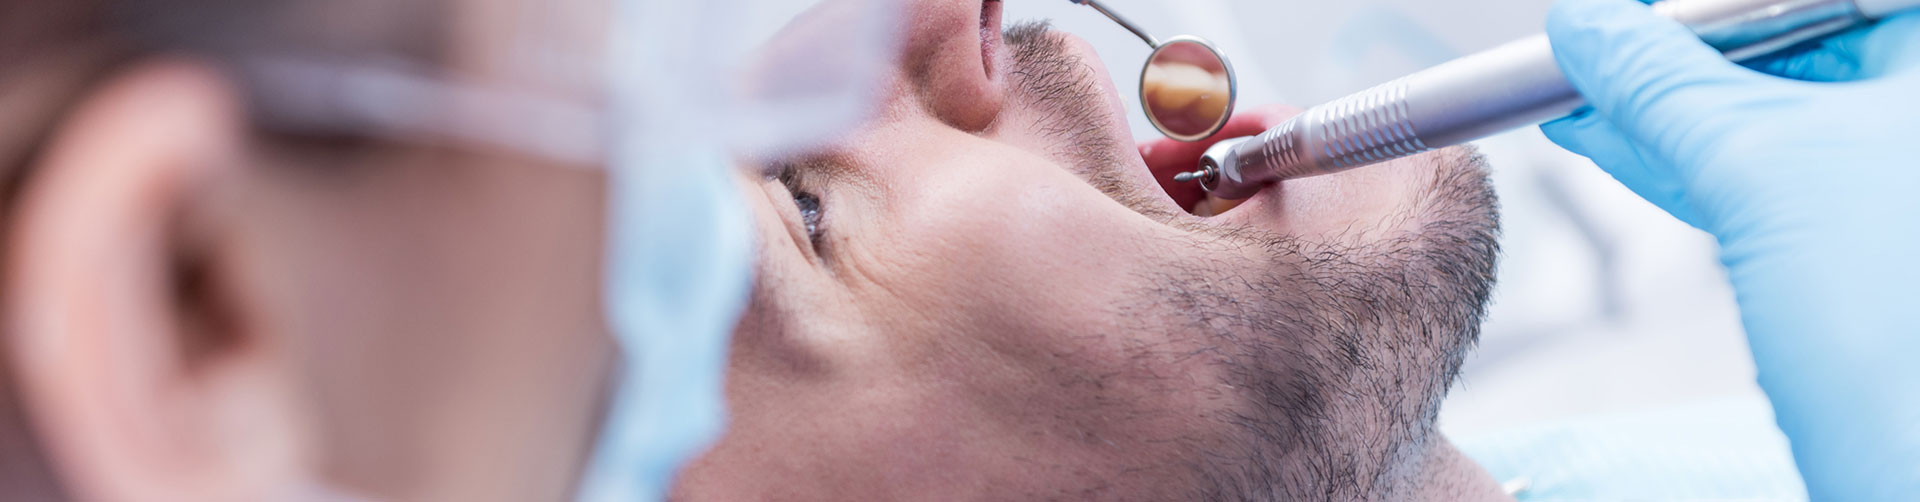 man having tooth treatment